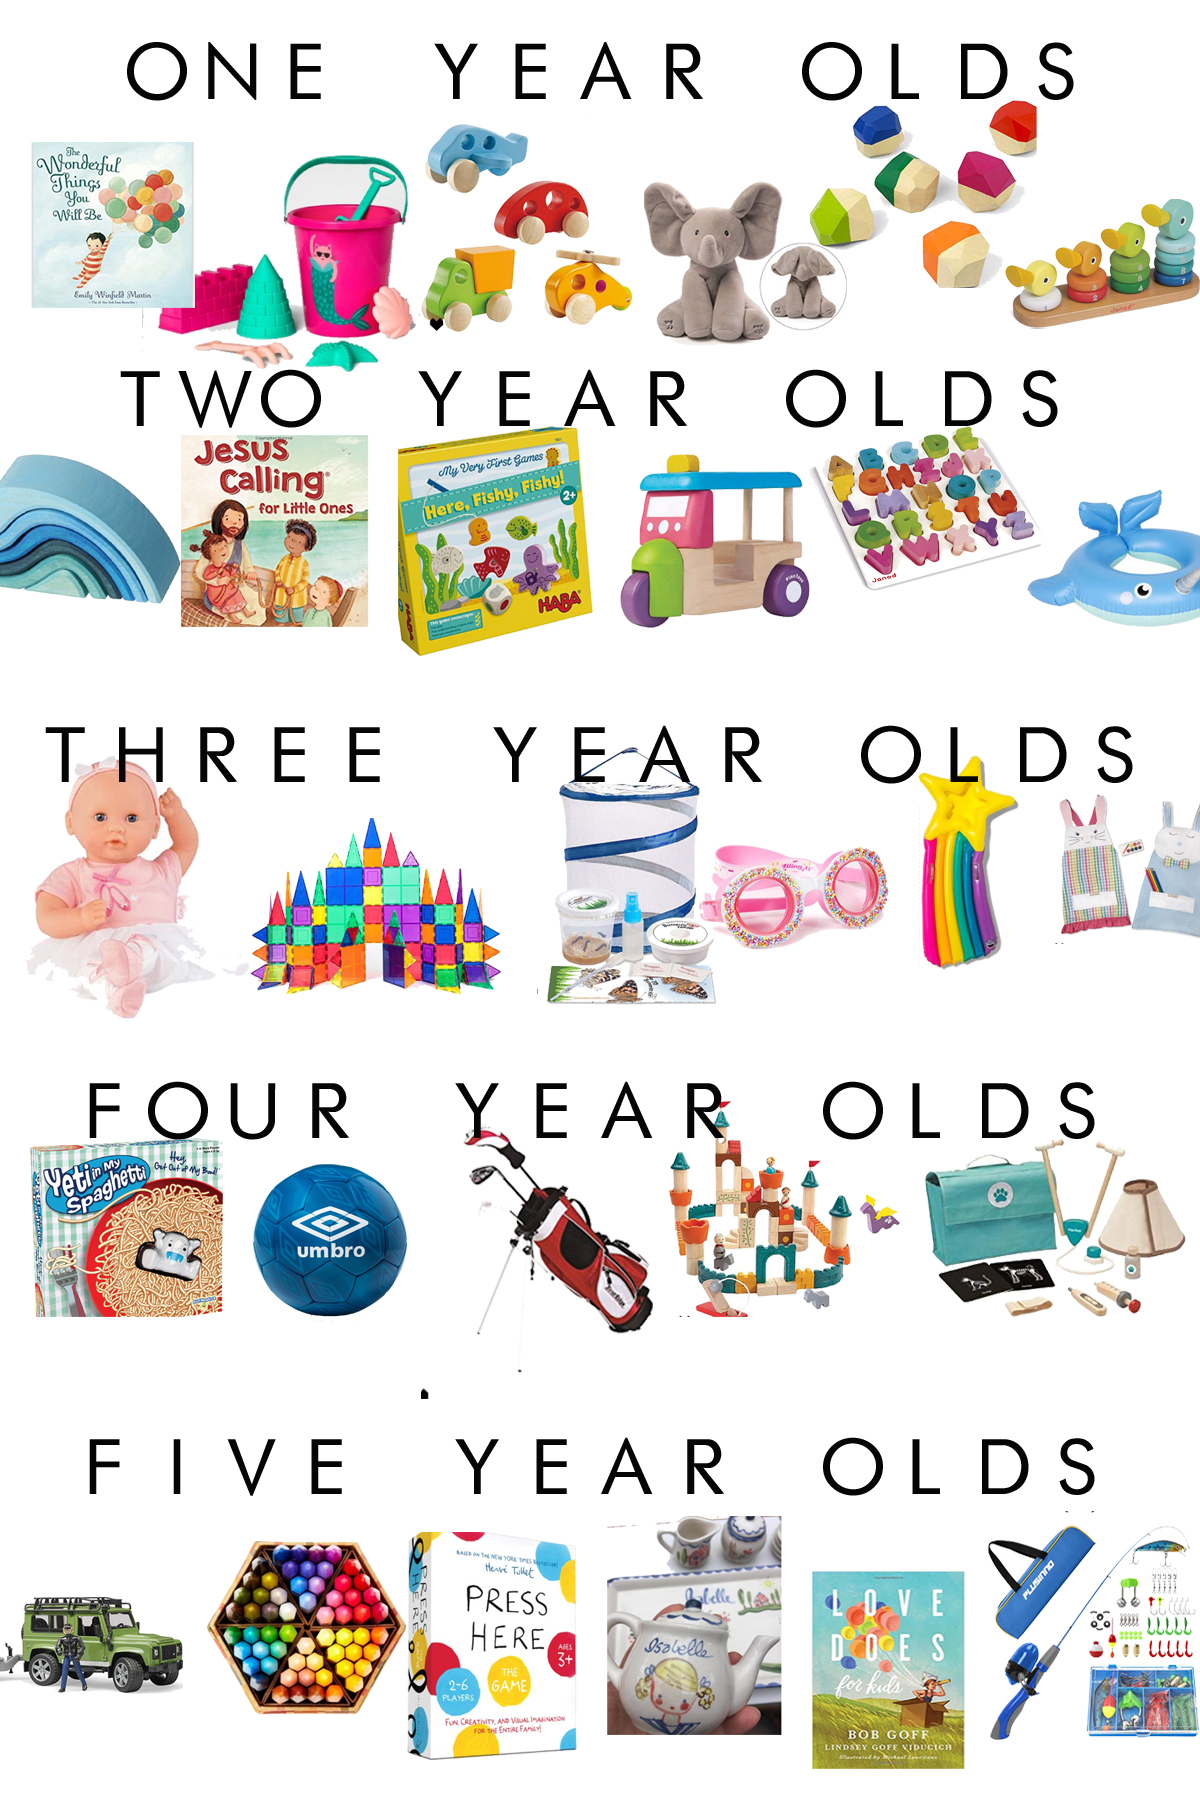 GO TO birthday party gifts for kids ages 1-5 years old